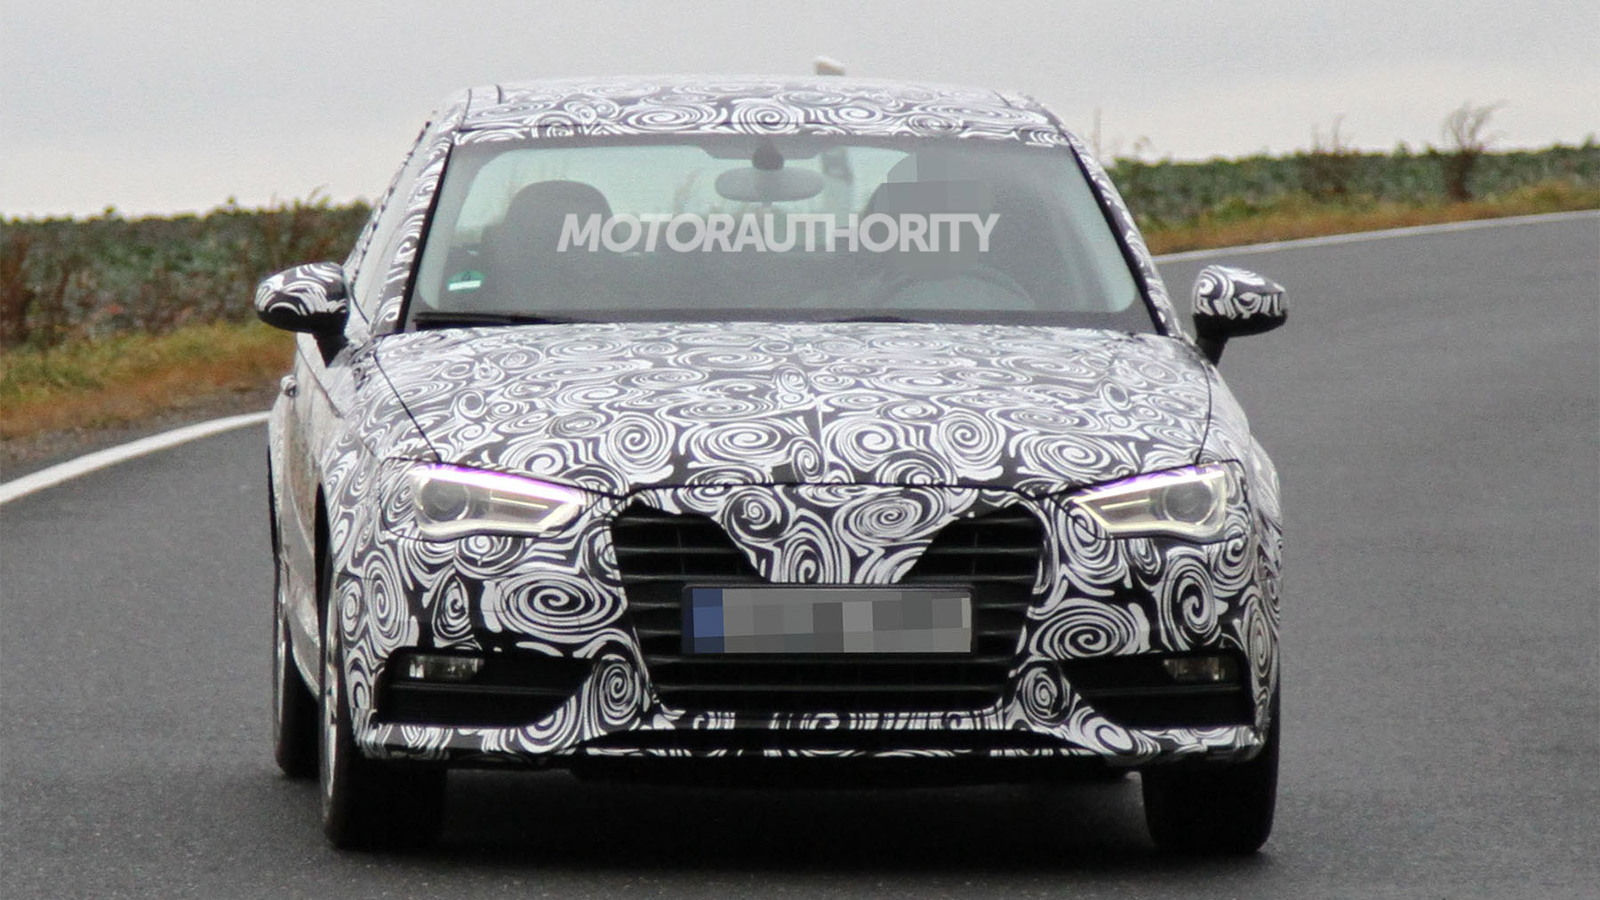 2013 Audi A3 Hatchback spy shots